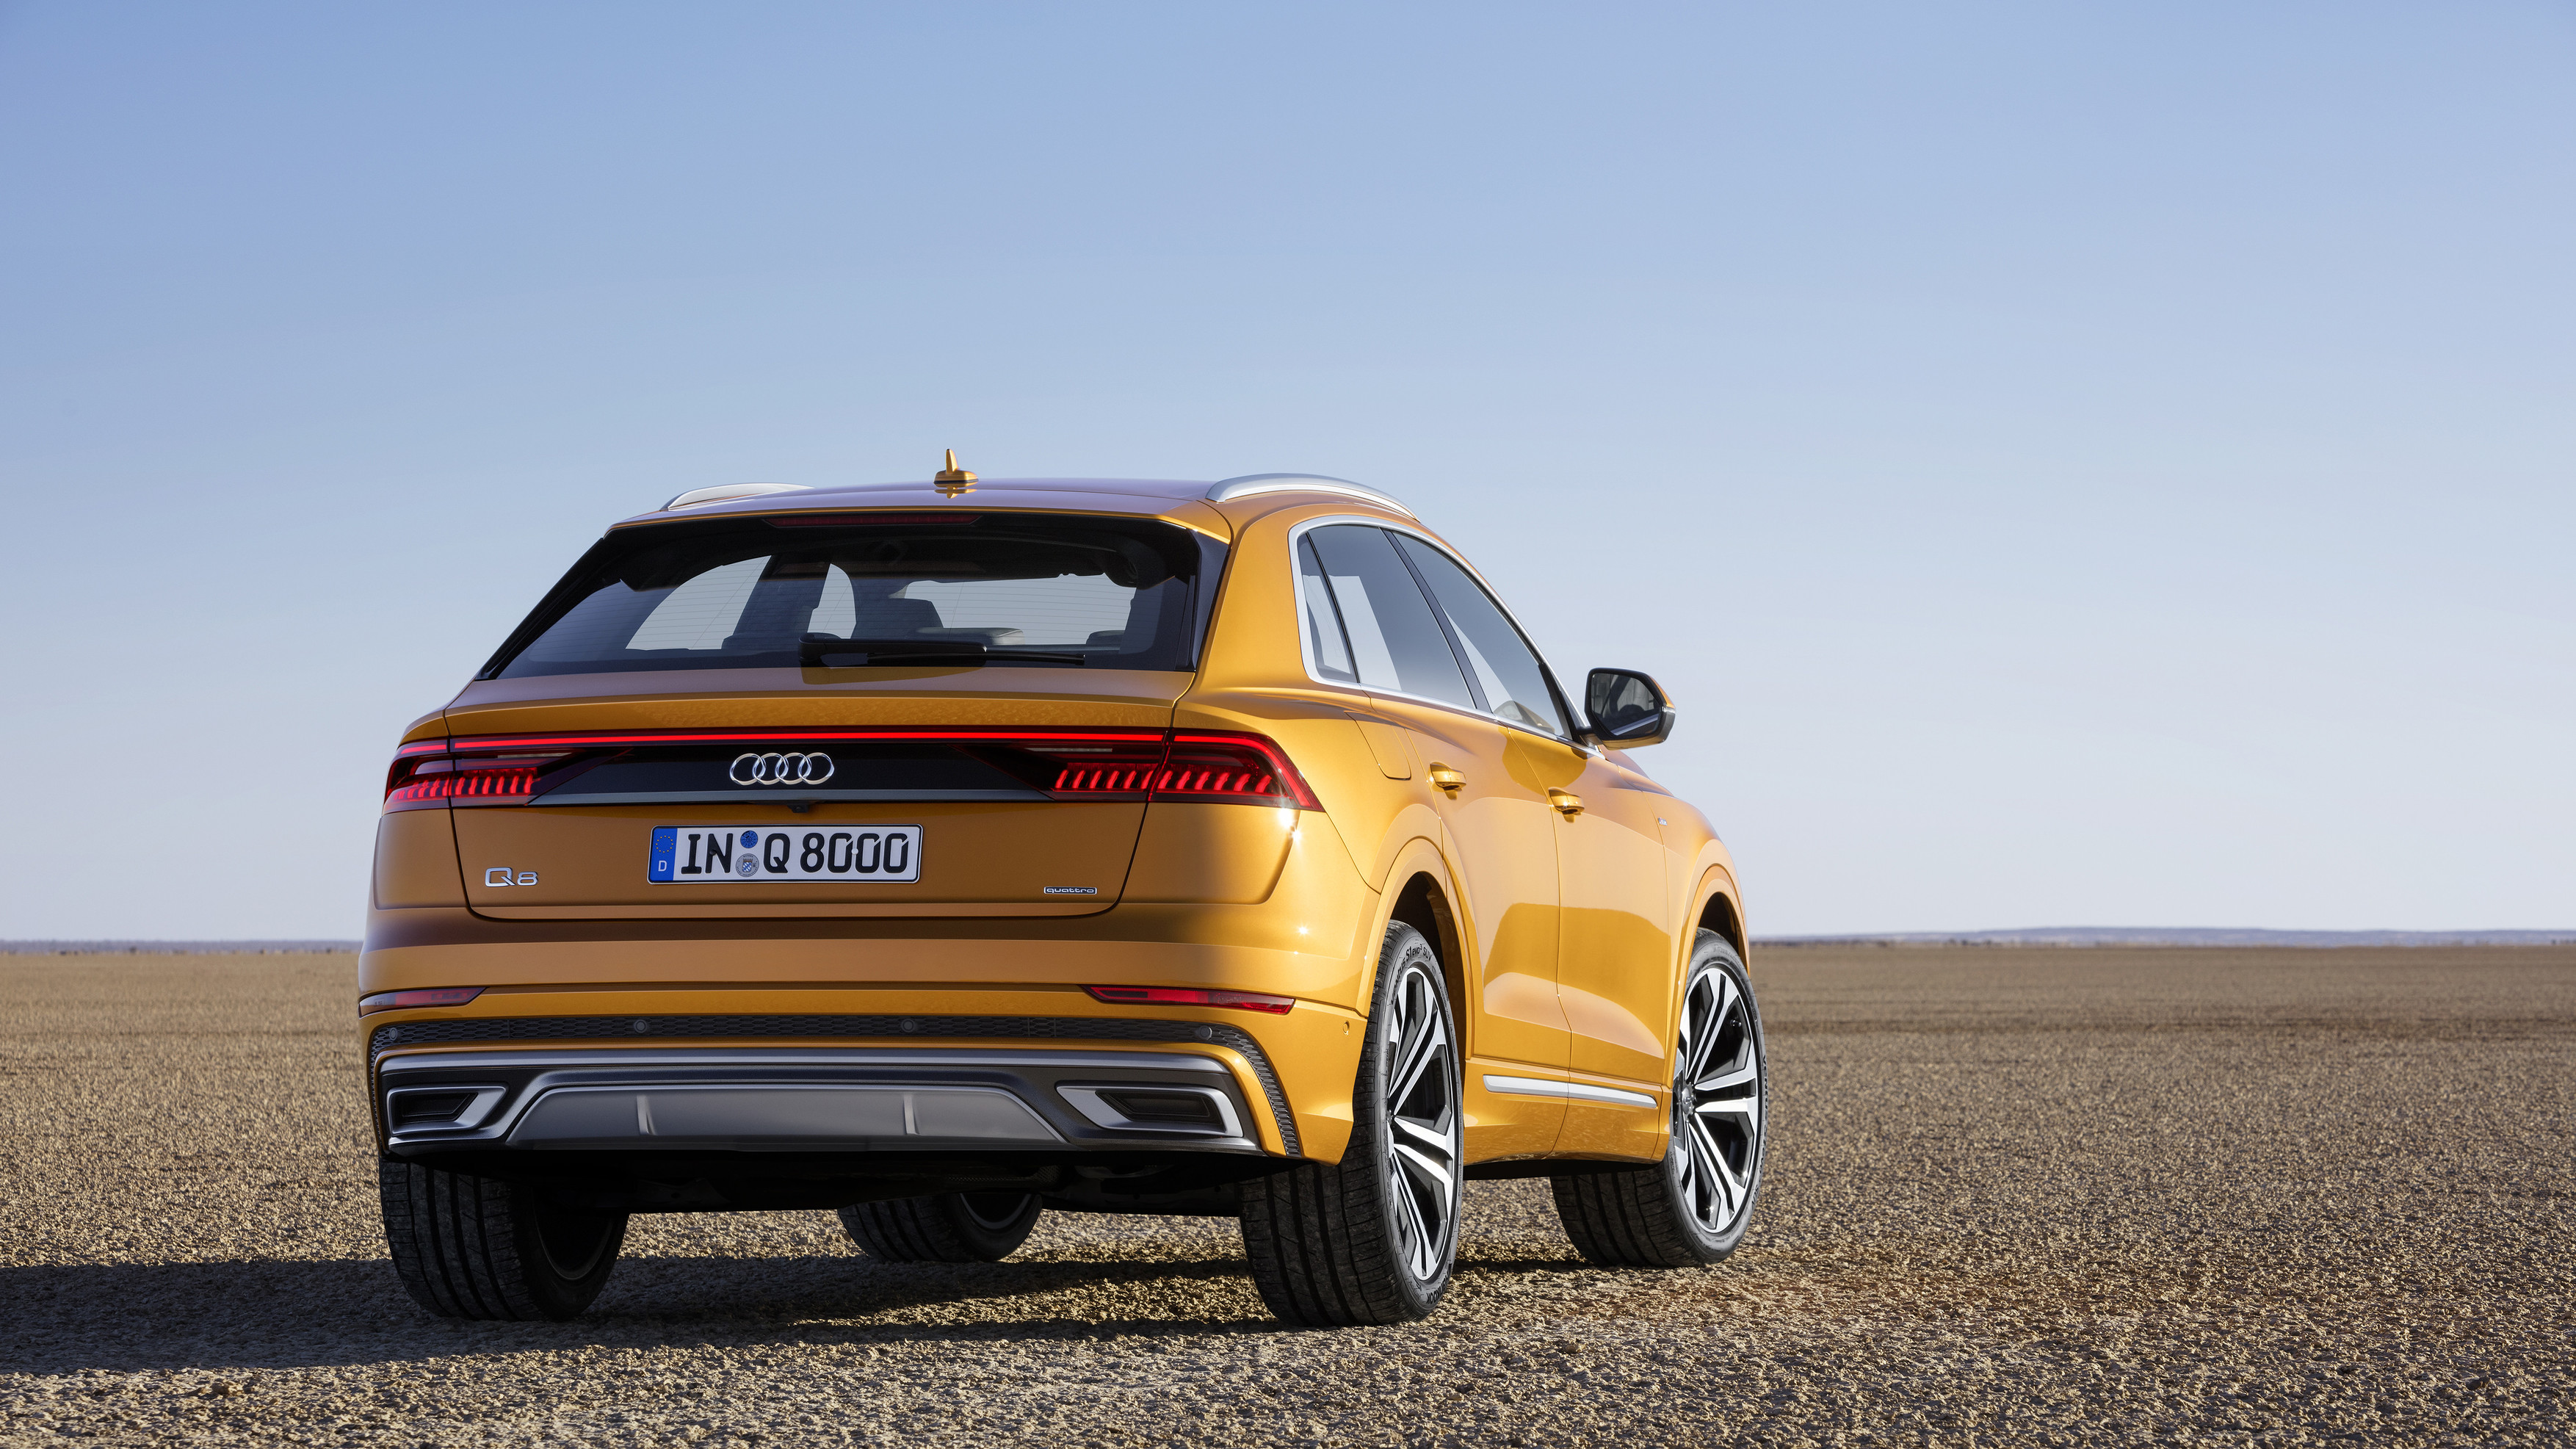 The Audi Q8 combines the elegance of a four-door luxury coupe with the practical versatility of a large SUV. Richly equipped, comprehensively connected and tough enough for off-road duty, the new Q8 is a confident companion for business and leisure.